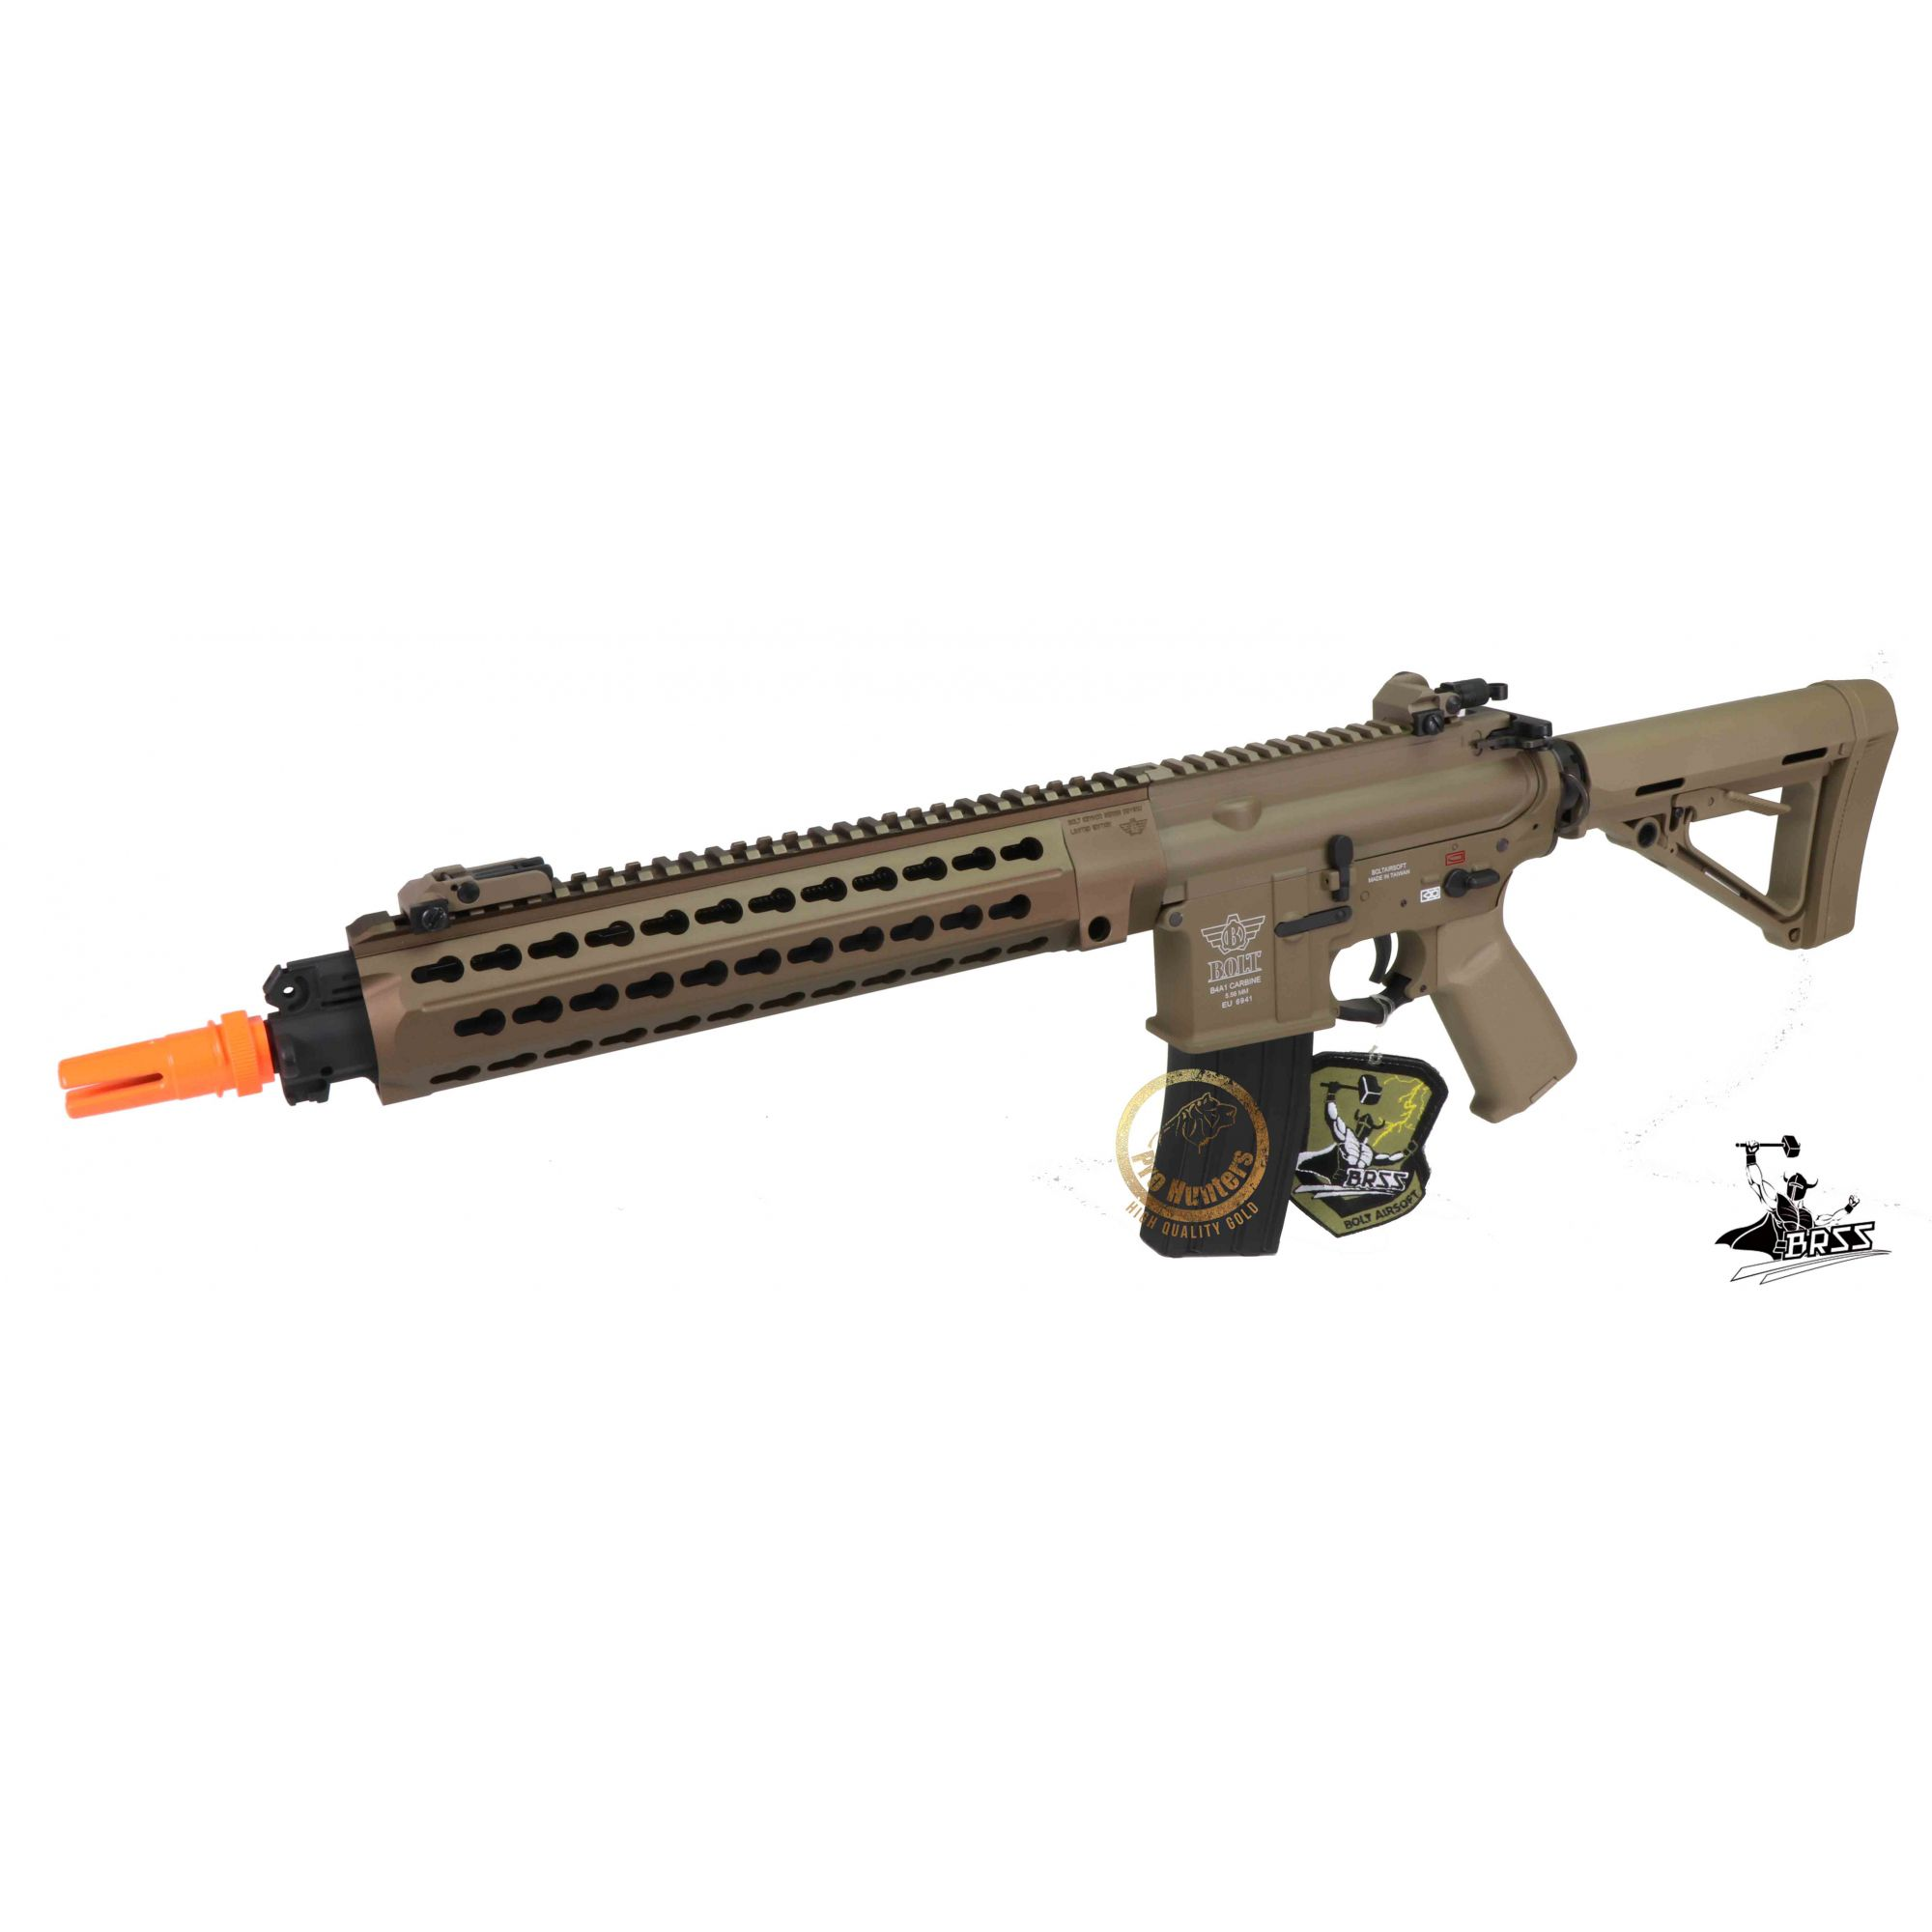 Rifle Airsoft M4 BOLT B4 DEVGRU K12 - Tan Full Metal - Blowback & Recoil System